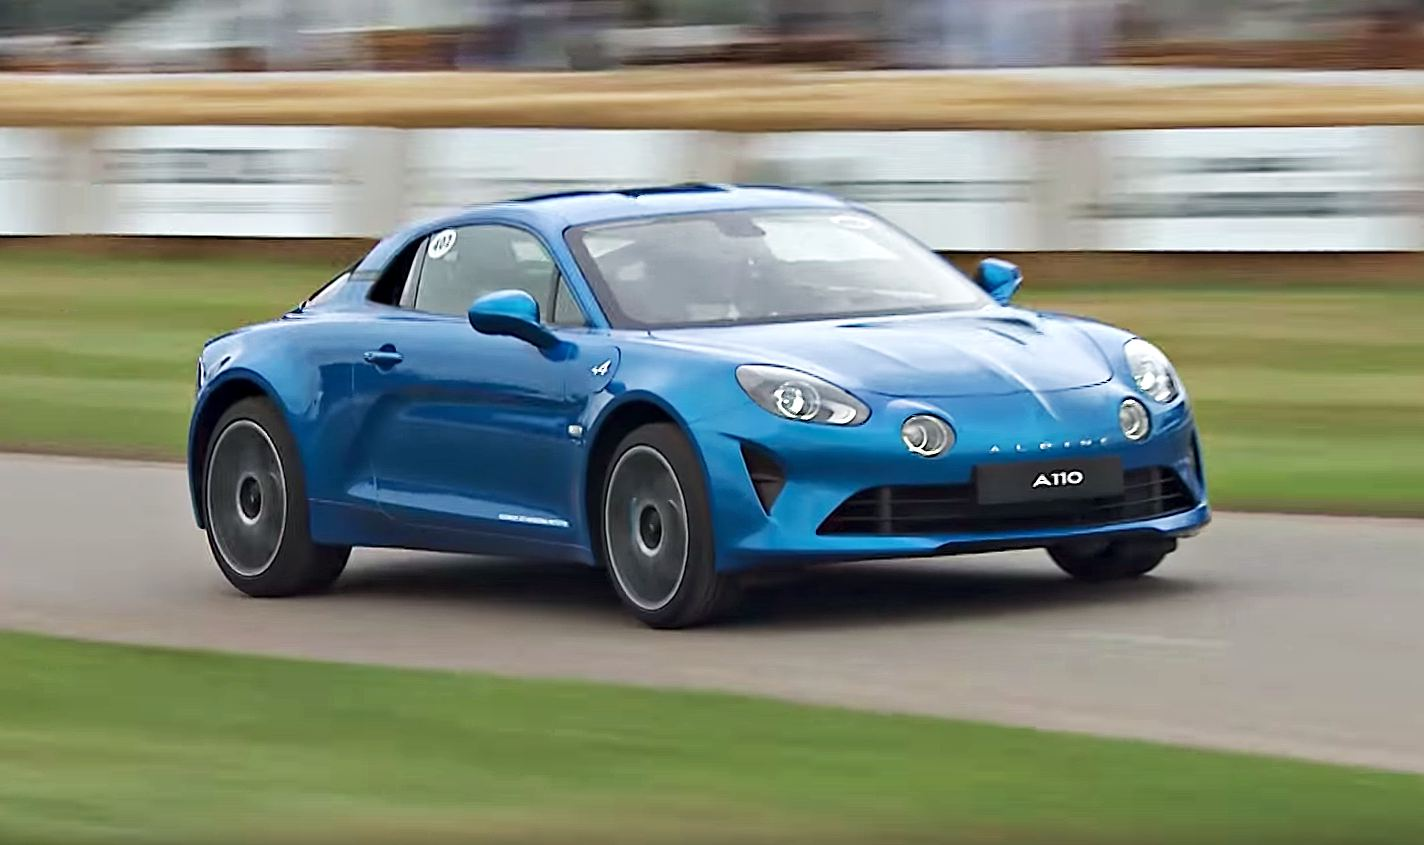 news 2017 alpine a110 makes dynamic debut at goodwood. Black Bedroom Furniture Sets. Home Design Ideas